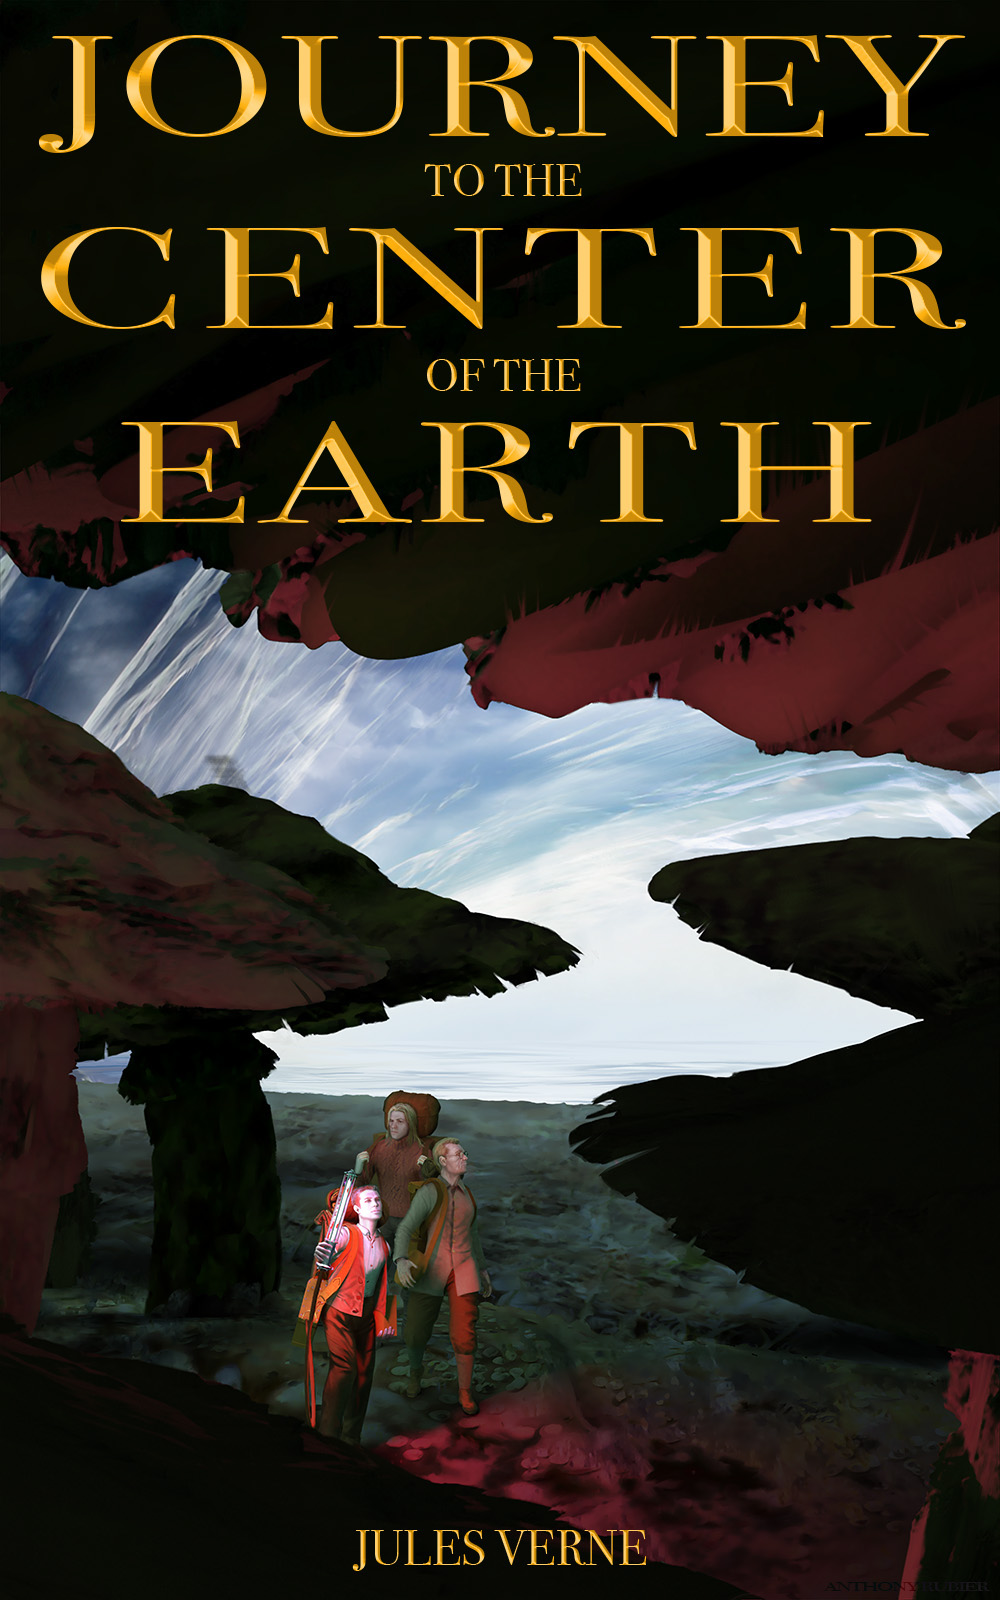 Famous Book Cover ~ Journey to the center of the earth book cover project on behance